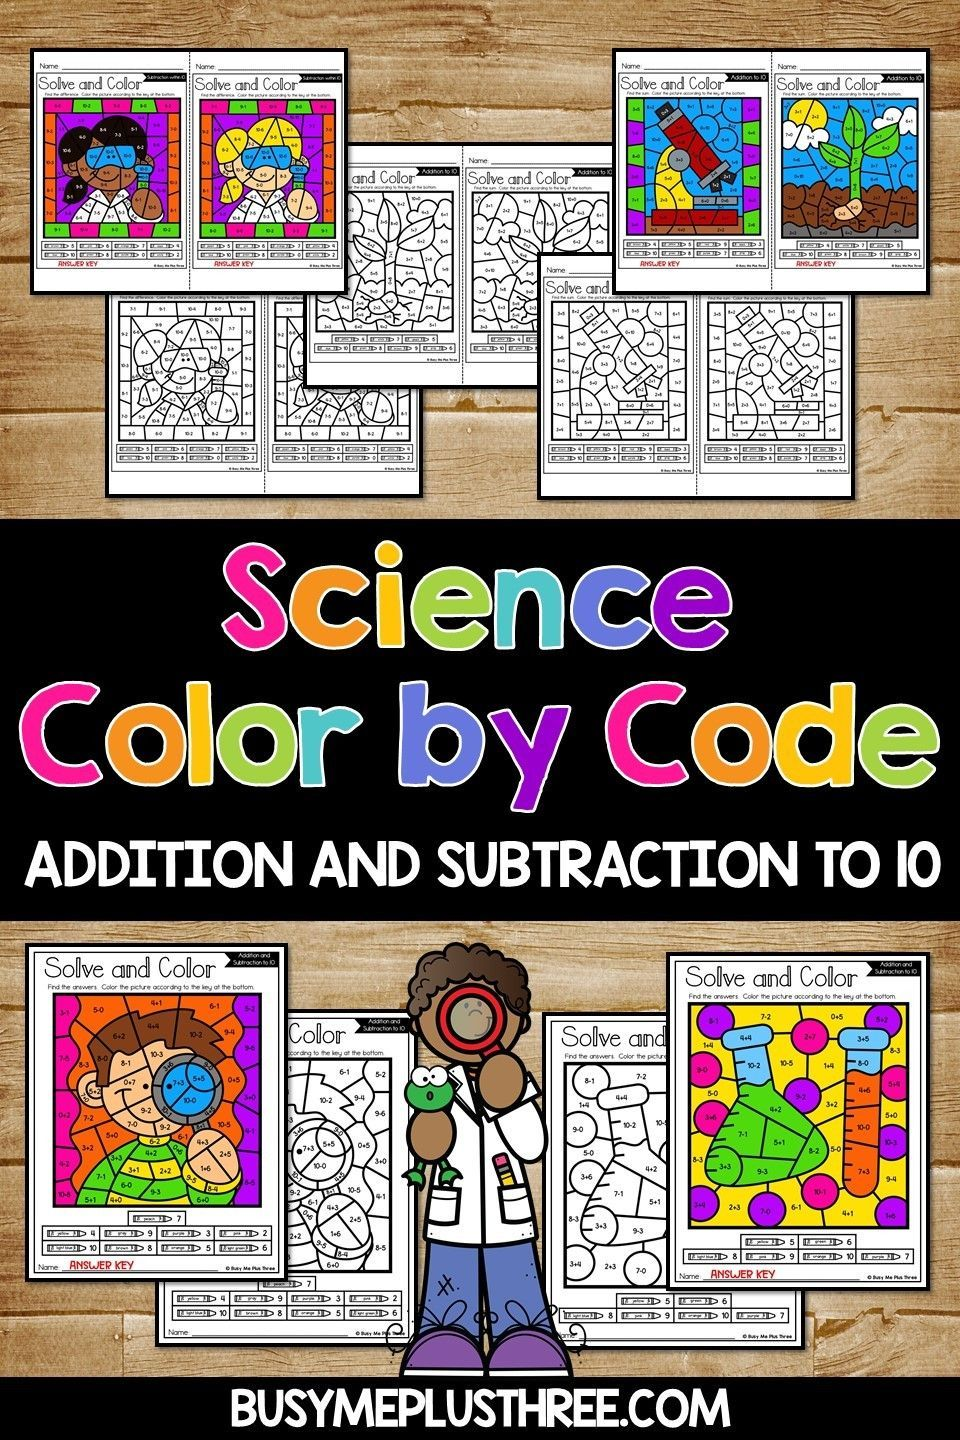 Fun Science Themed Color By Code Math Activity Addition And Subtraction To 10 Addition And Subtraction Fun Classroom Activities Fun Science